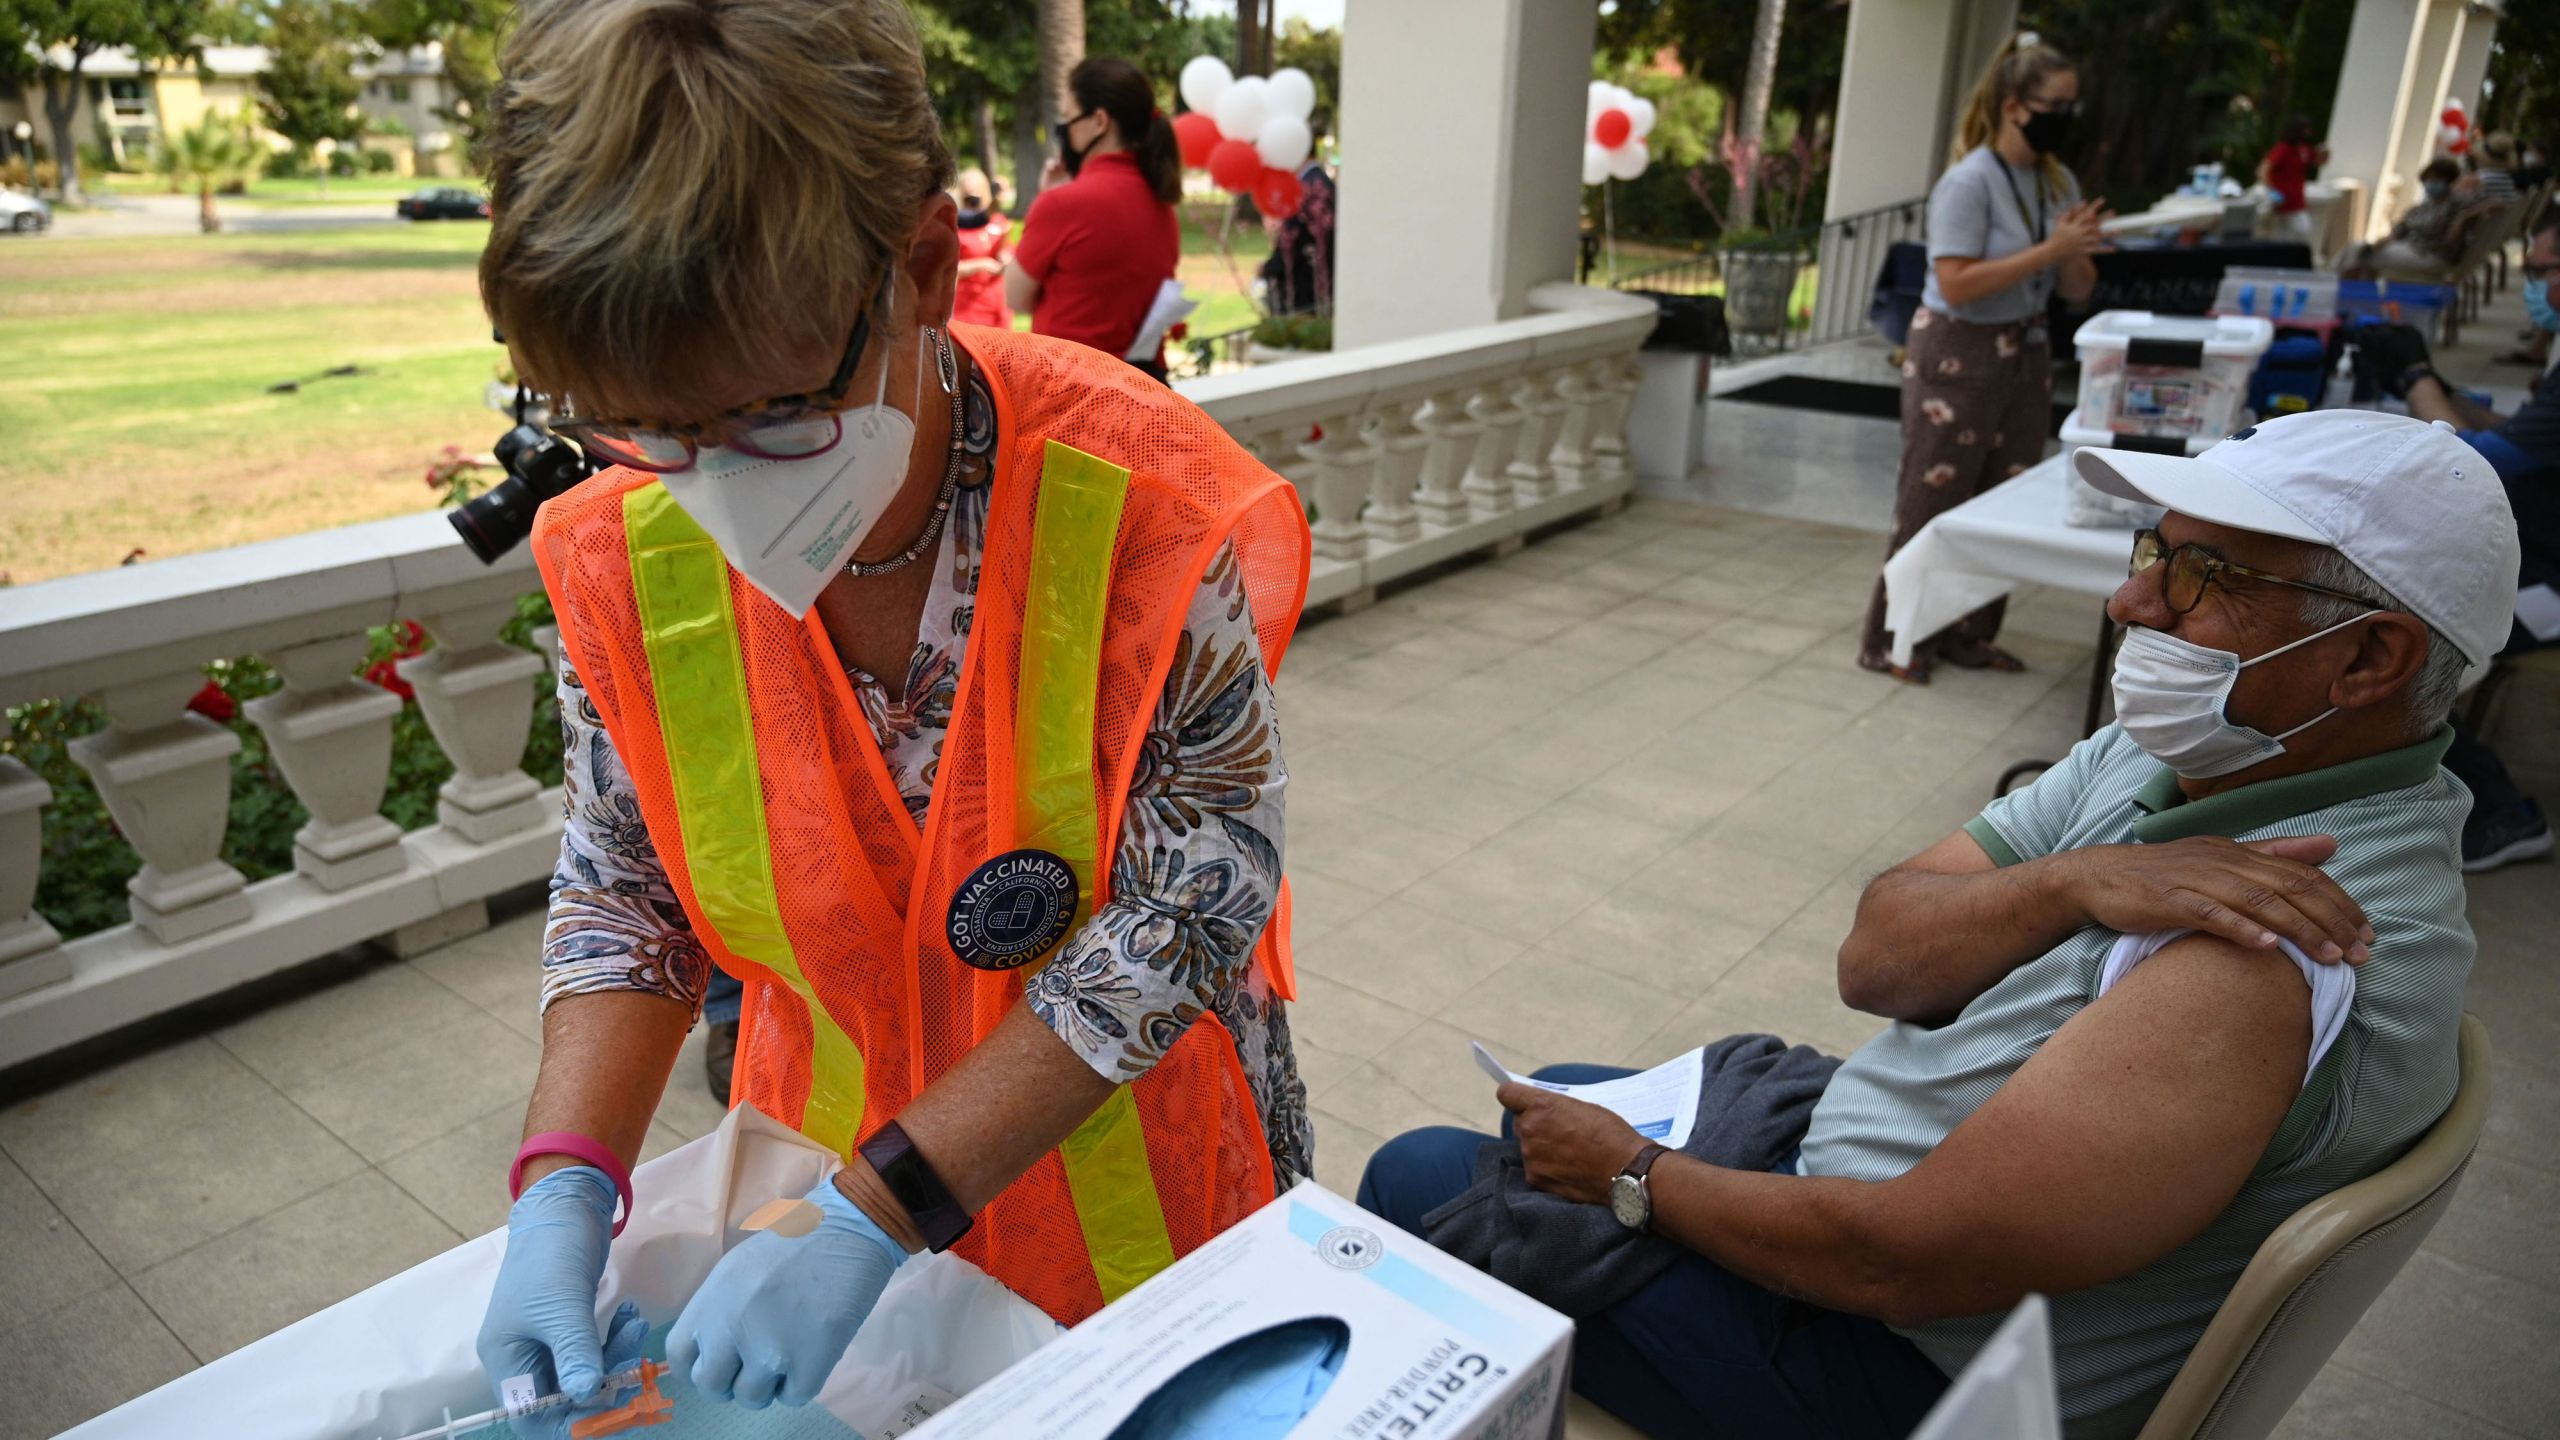 A nurse prepares a first dose of the Pfizer COVID-19 vaccine for Jose Luis Sanchez at a clinic hosted by The Tournament of Roses in partnership with the Pasadena Public Health Department on Aug. 19, 2021, at Tournament House in Pasadena. (Robyn Beck / AFP / Getty Images)